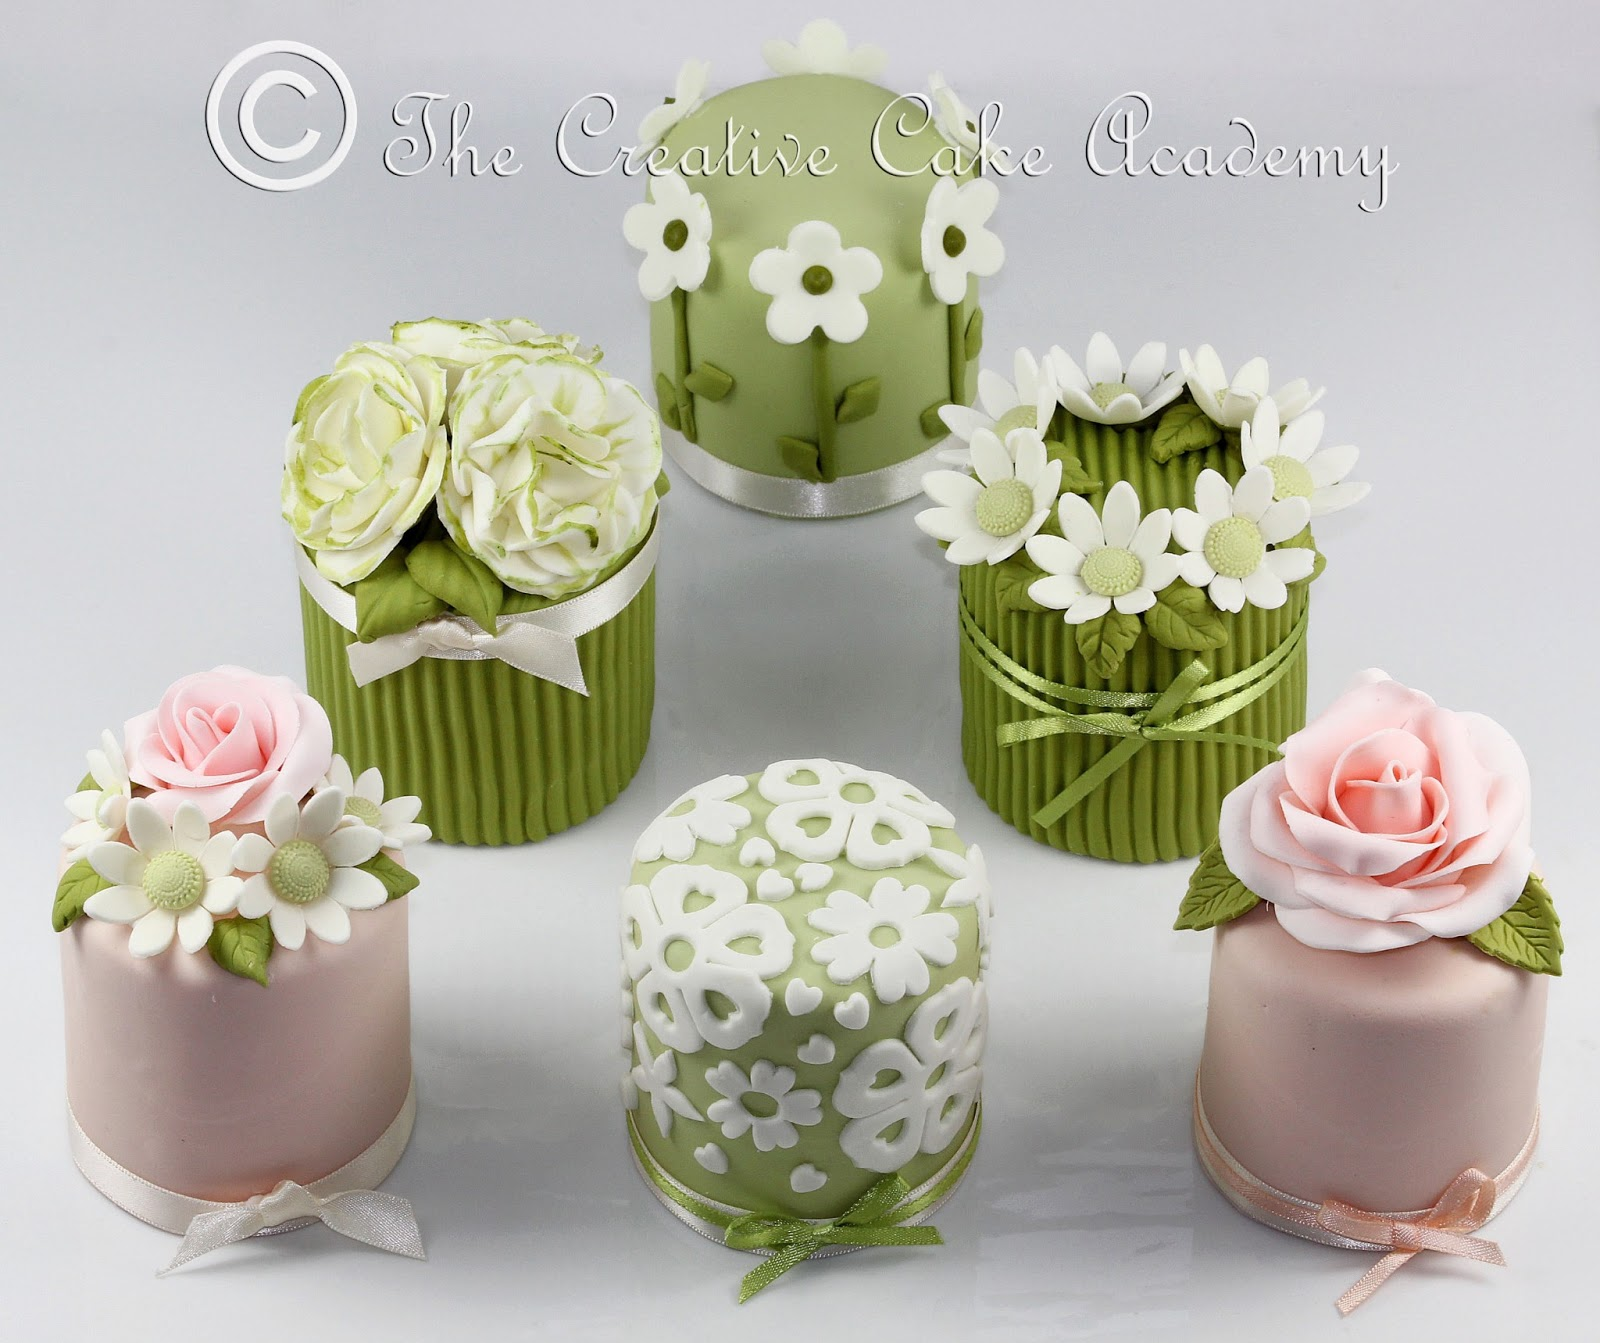 The Creative Cake Academy: CAKE DECORATION CLASSES